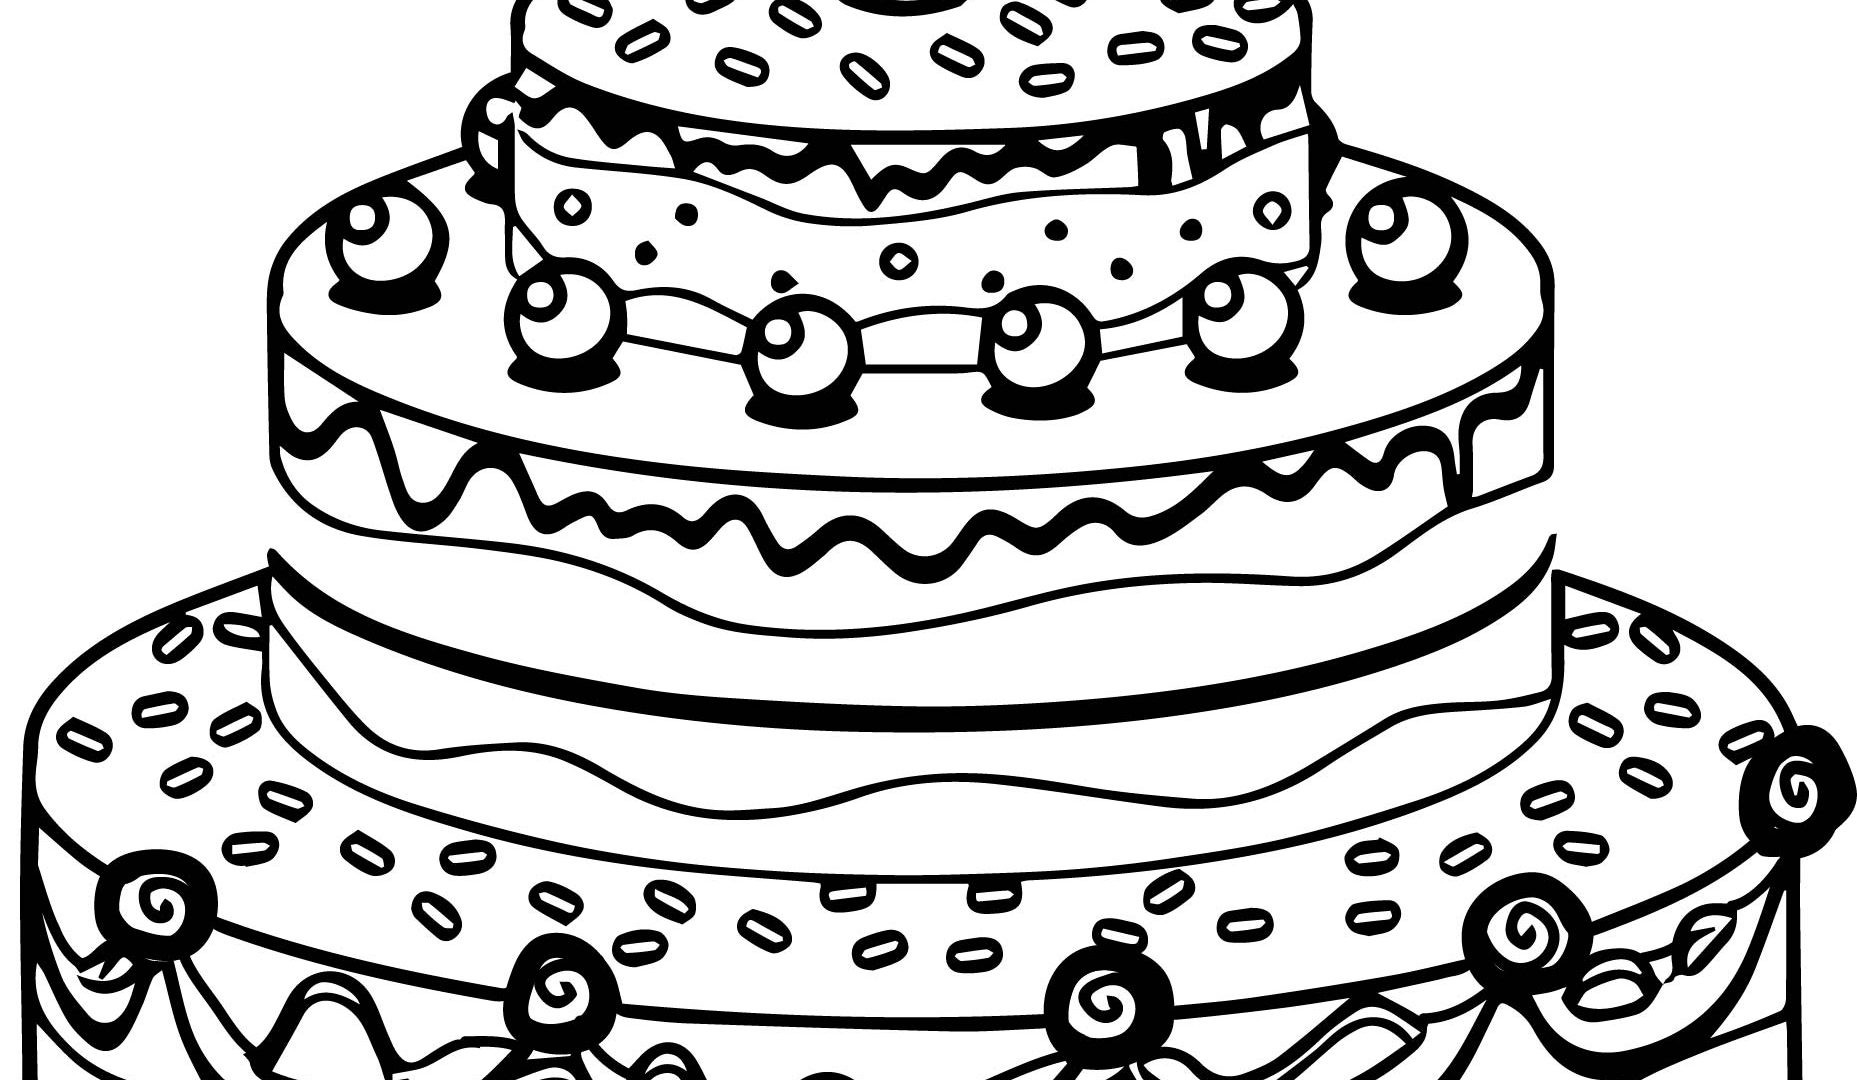 simple cake coloring pages slice of cake drawing at getdrawings free download coloring cake pages simple